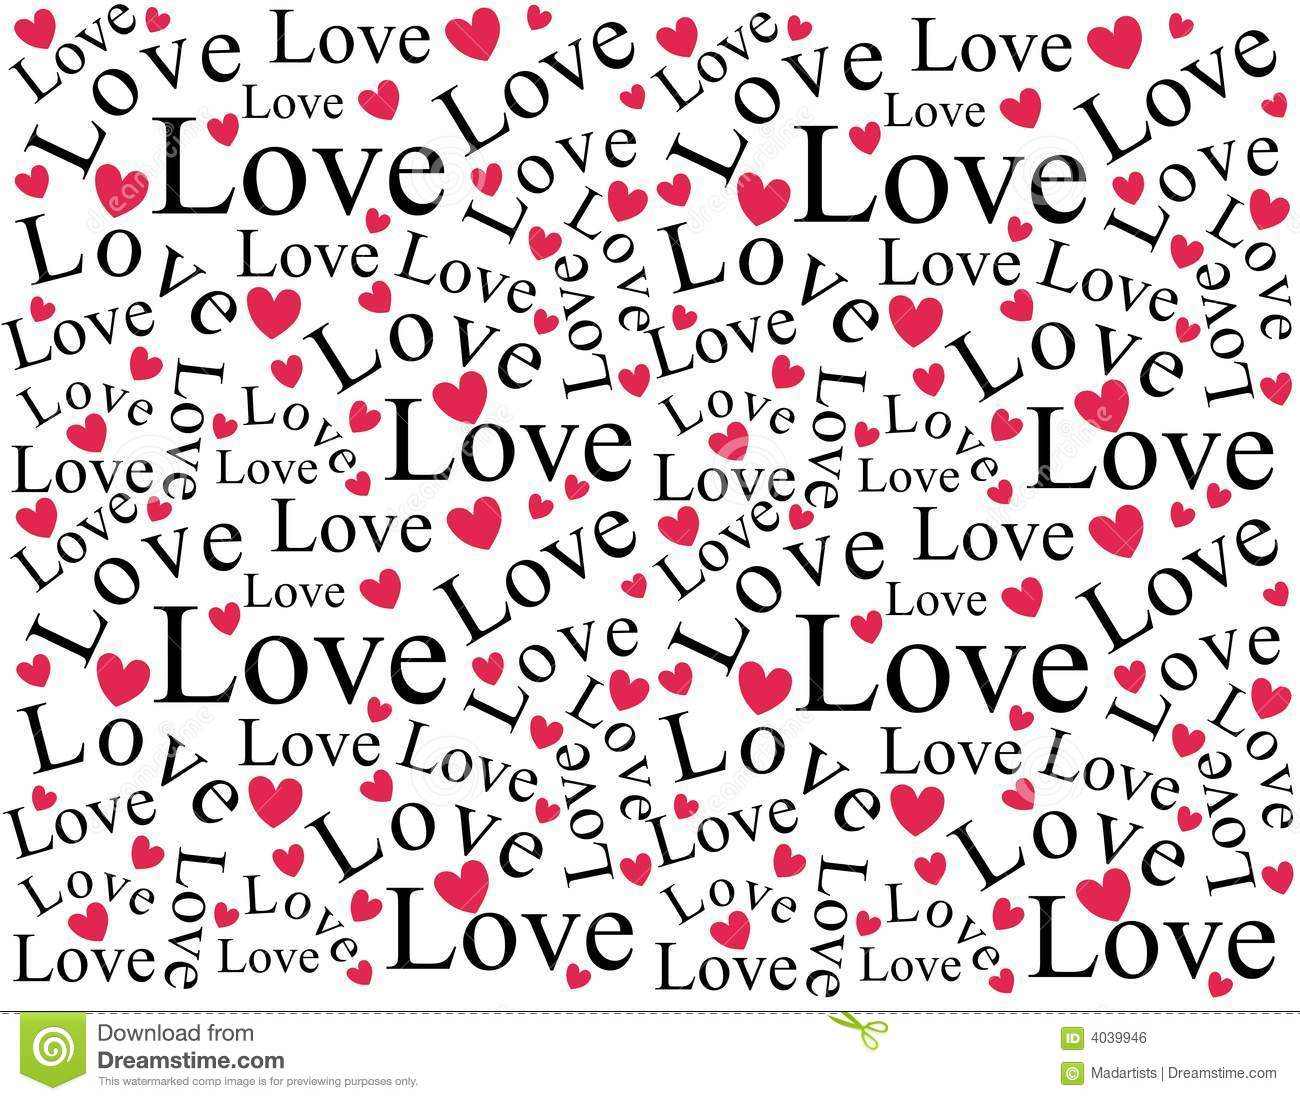 ... Hearts Background Pattern Royalty Free Stock Image - Image: 4039946